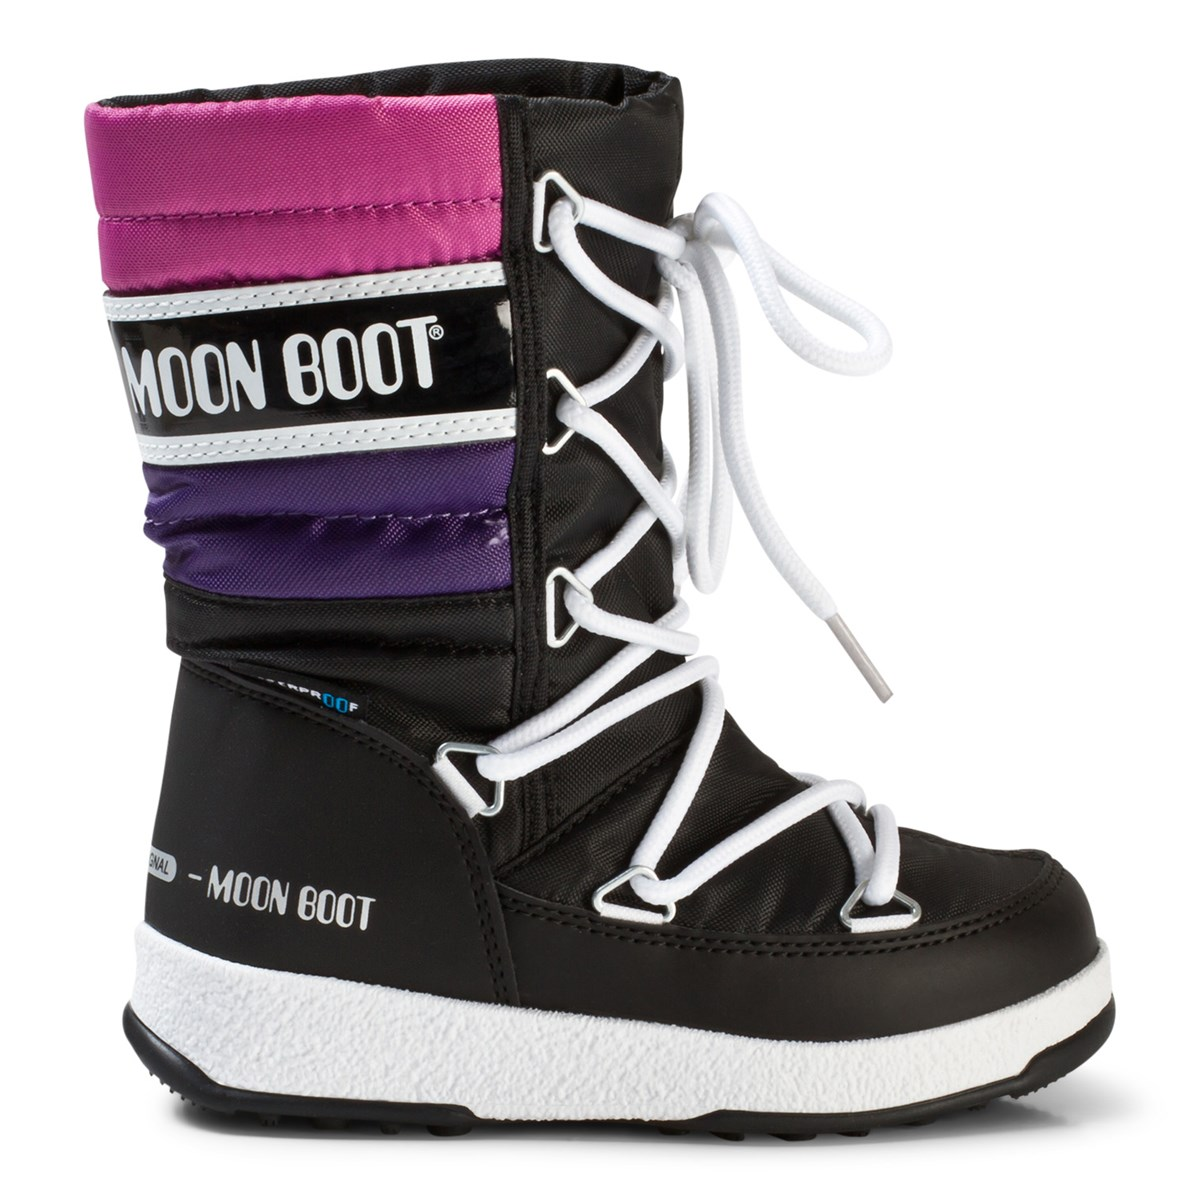 c375df400551 Moon Boot - Moon Boot Moonboot WE Quilted JR WP Black Purple Orchid -  Babyshop.com